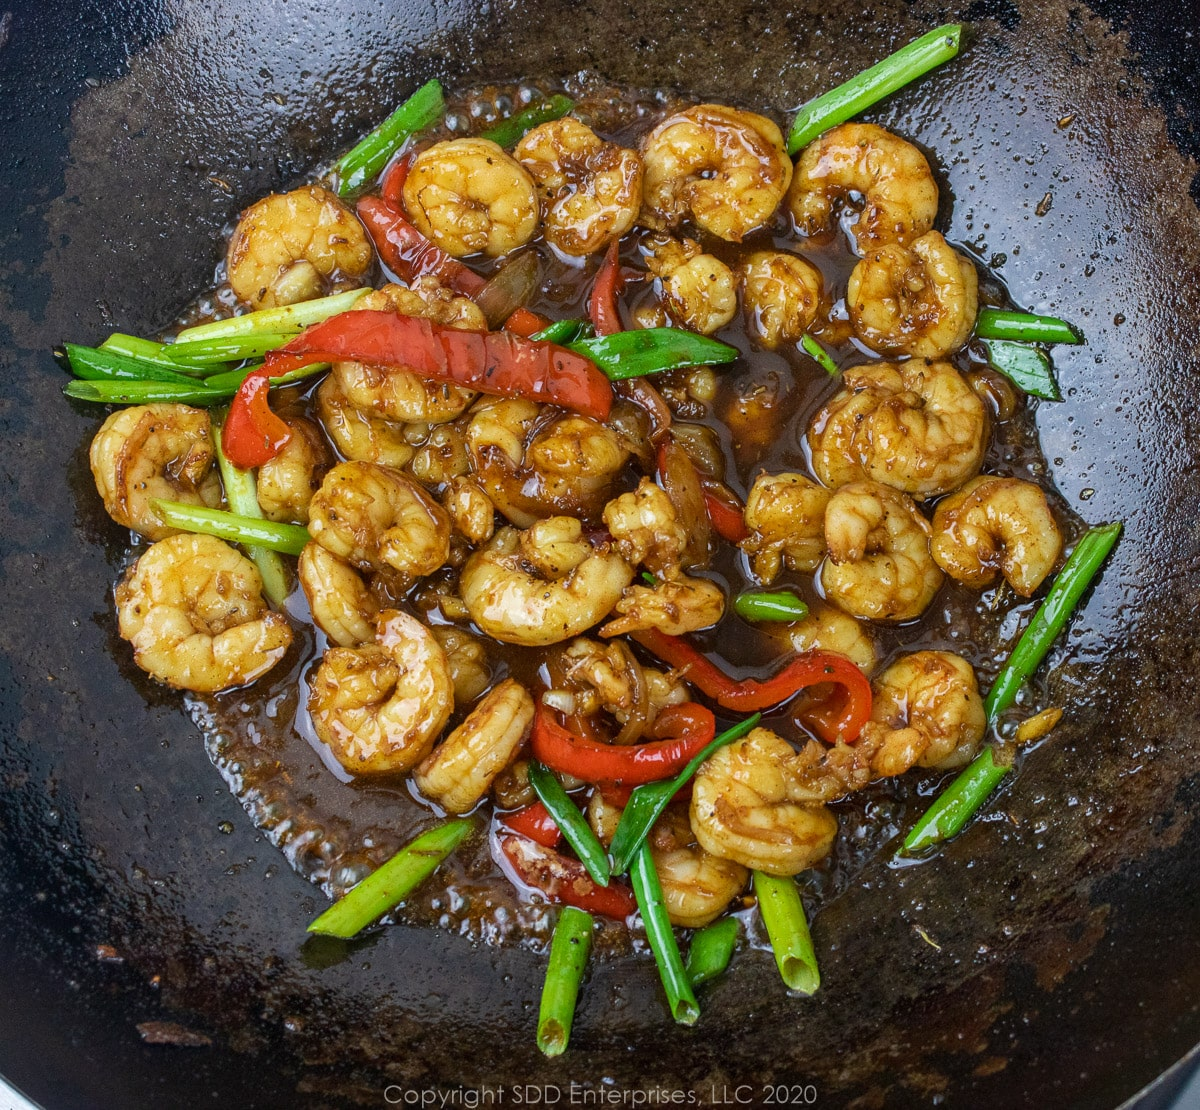 cane syrup sauce in the shrimp and onions and peppers in a wok